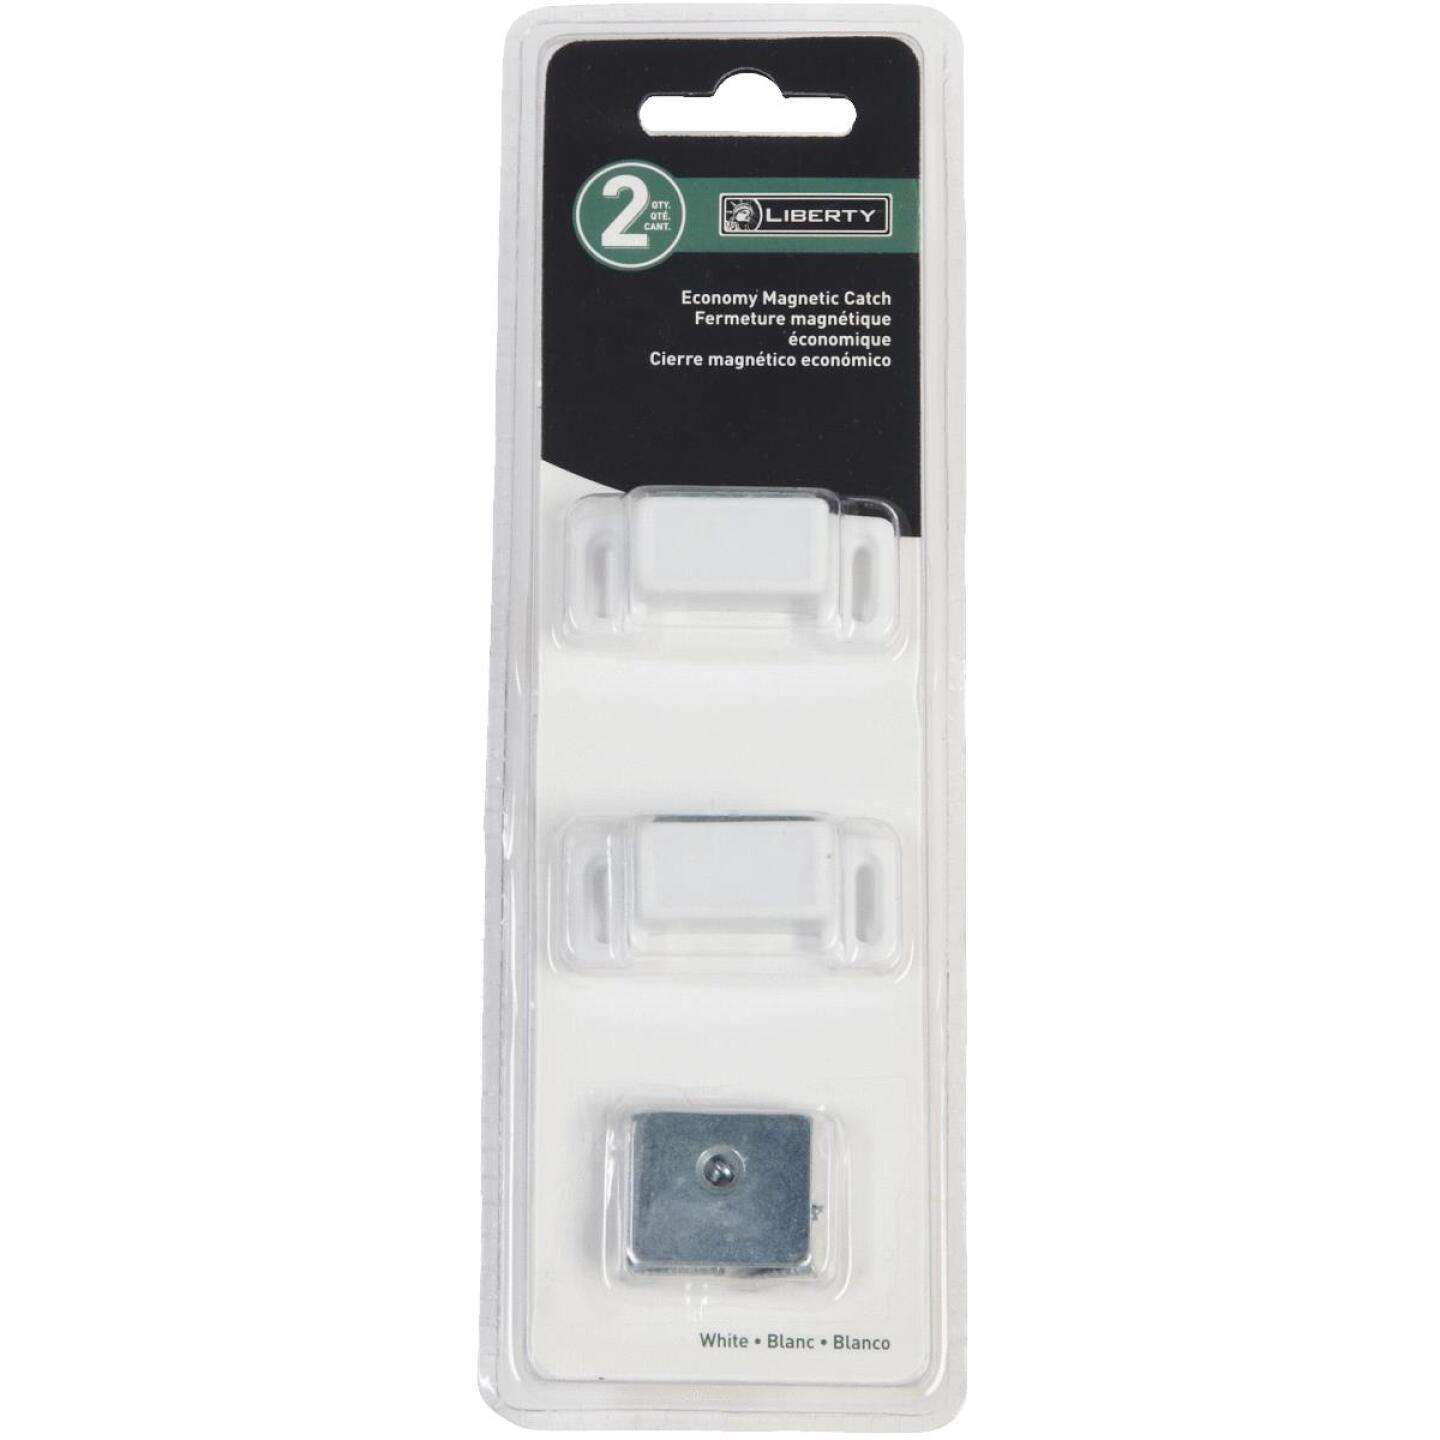 Liberty White Economy Magnetic Catch with Strike (2-Count) Image 2